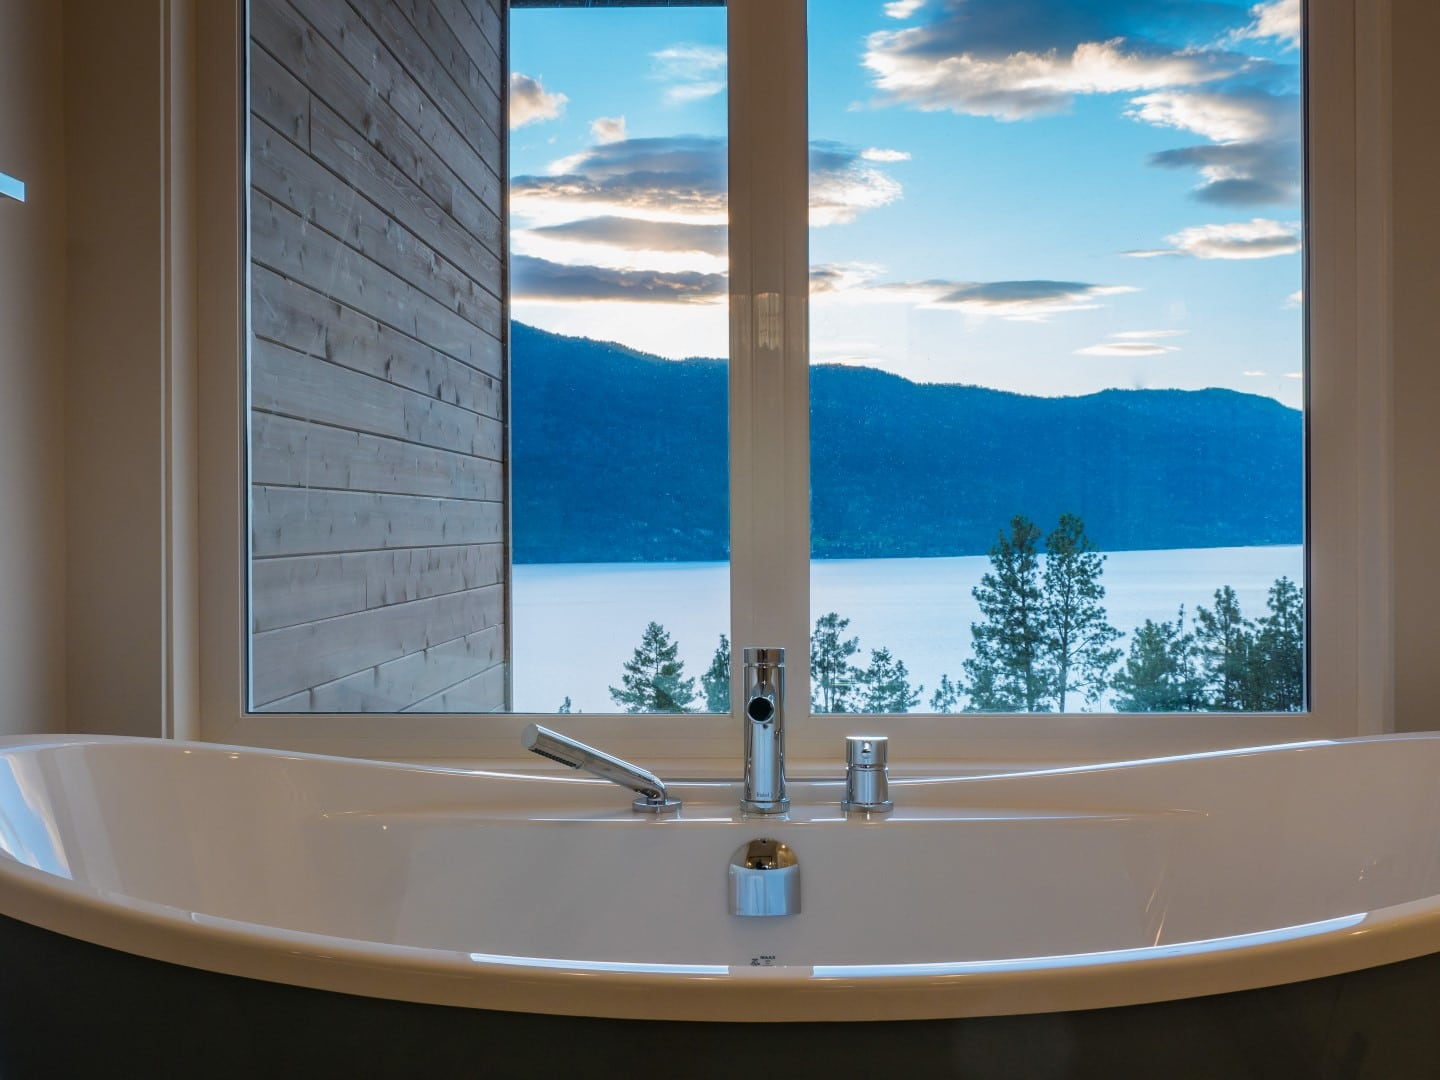 Bathtub view McKinley Beach - Show Home - Custom Home (25)